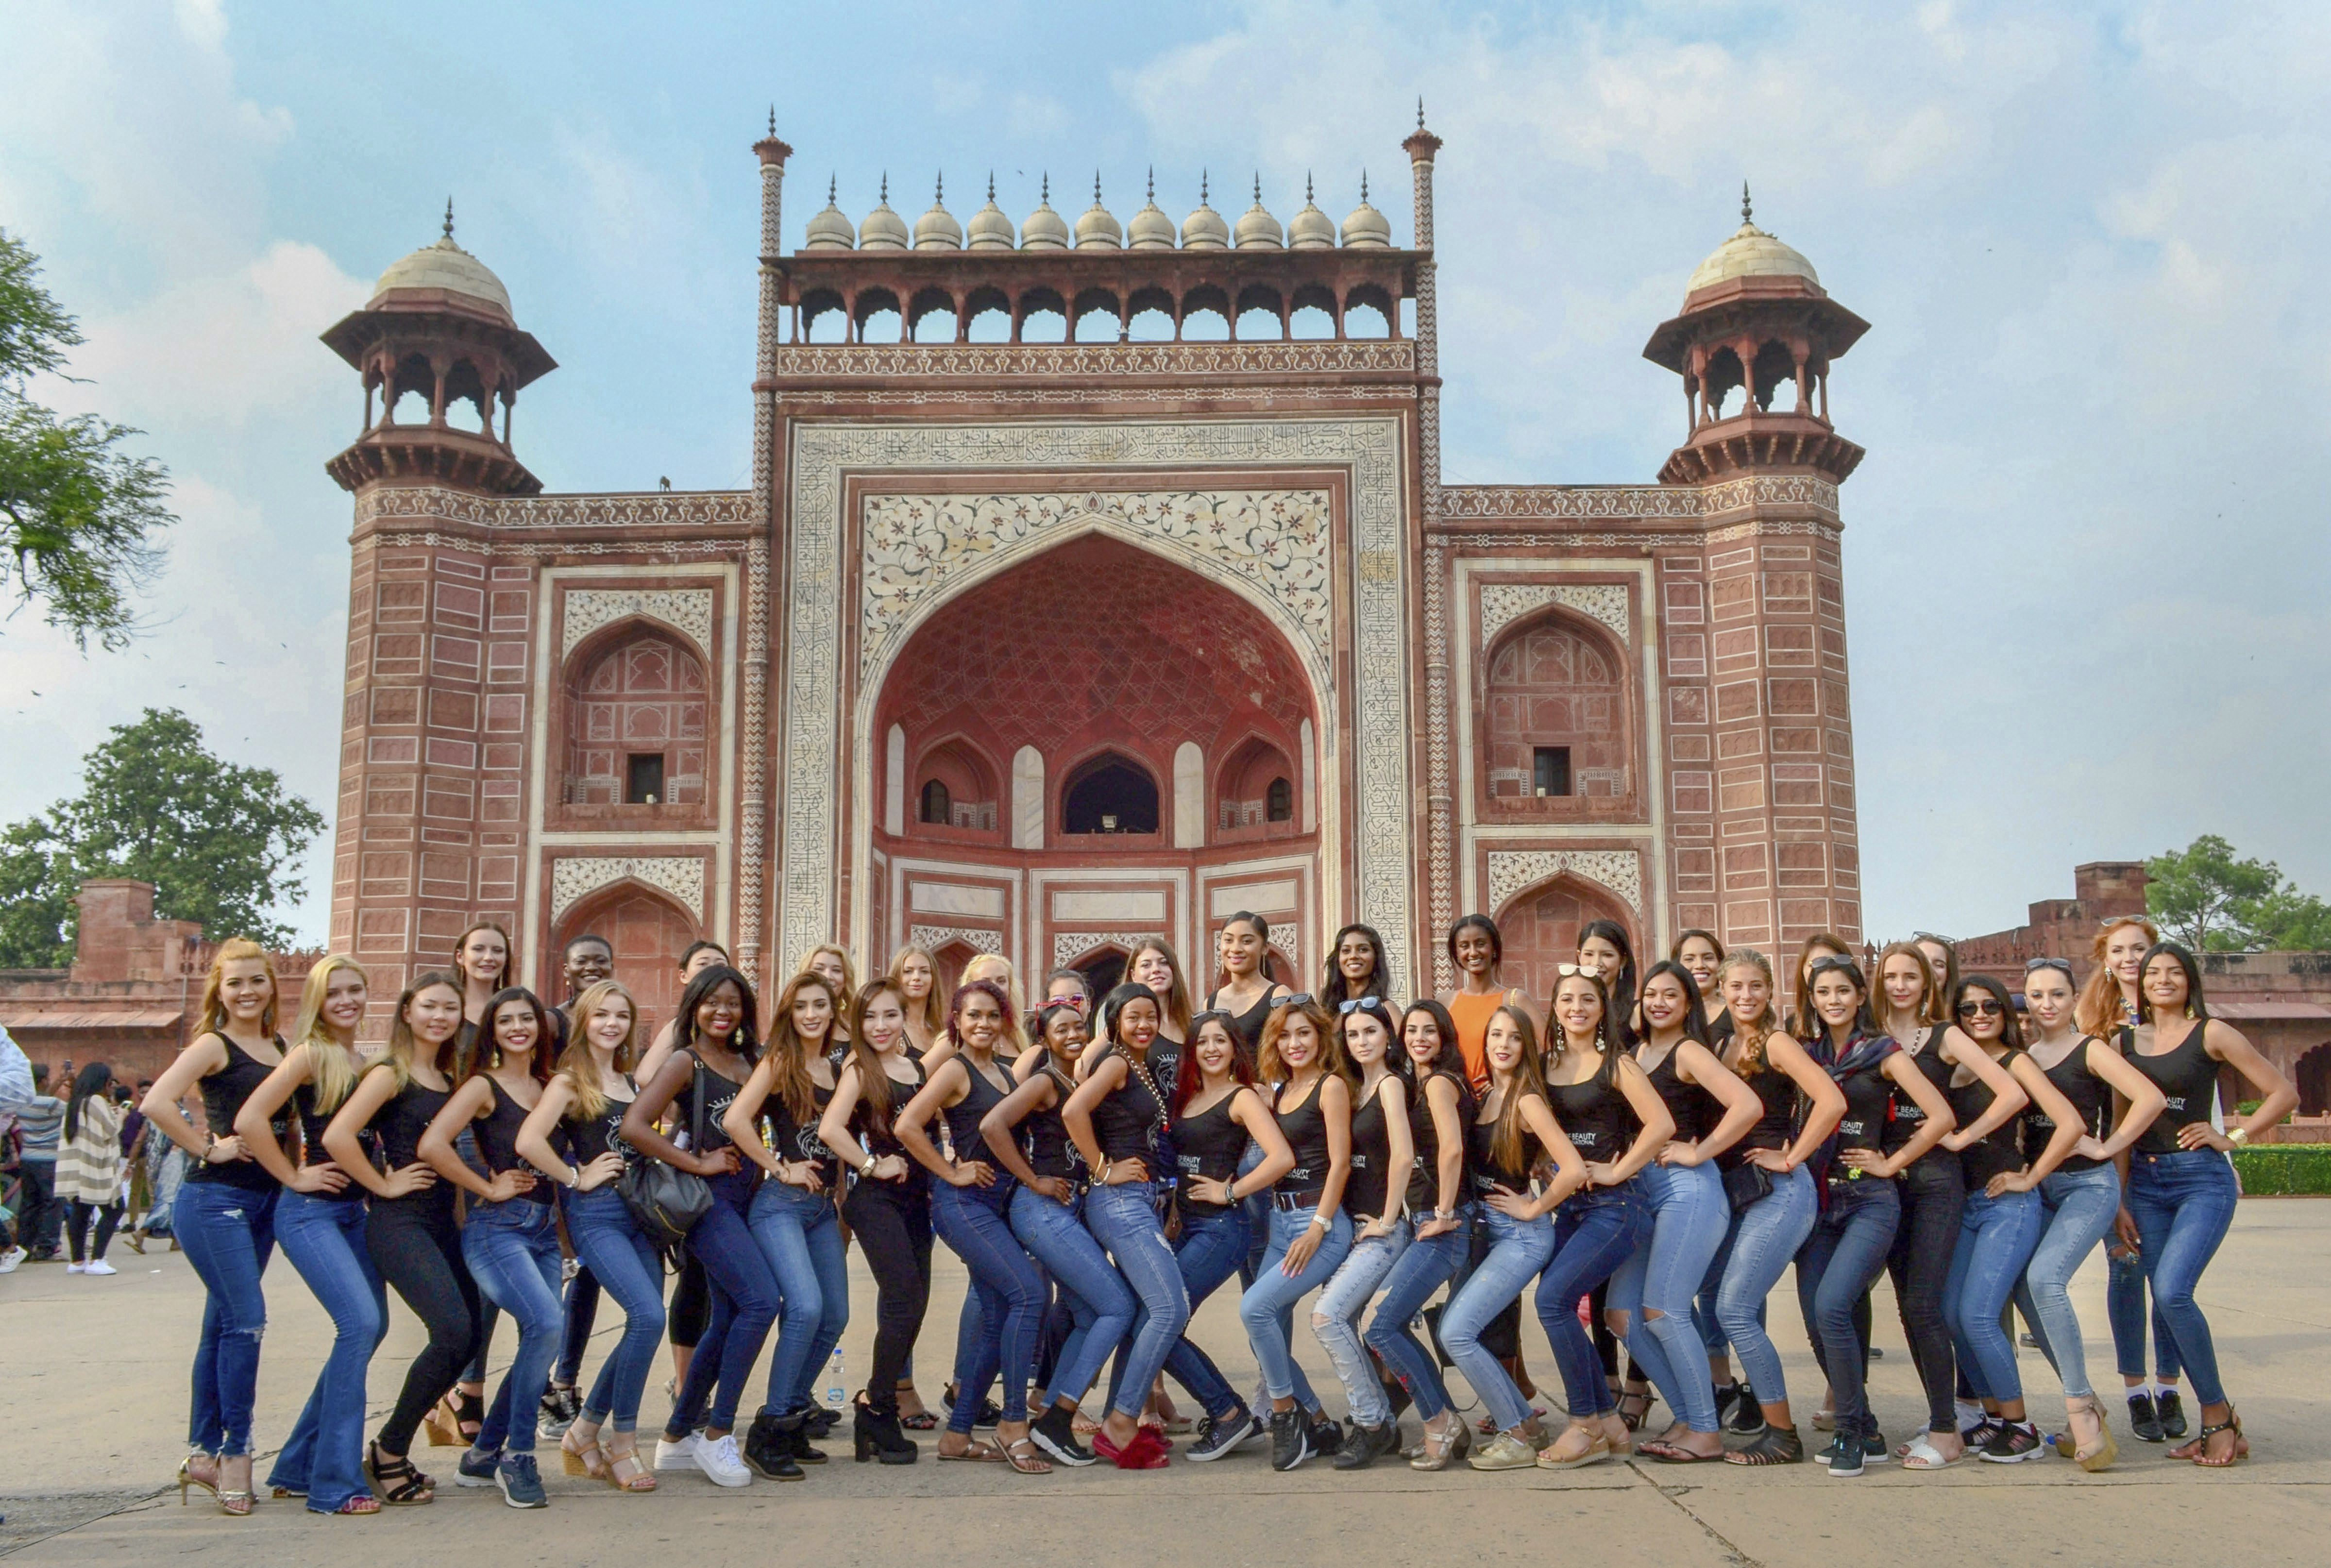 Models participating in an international beauty pageant pose for photos at the Taj Mahal premises, in Agra - PTI